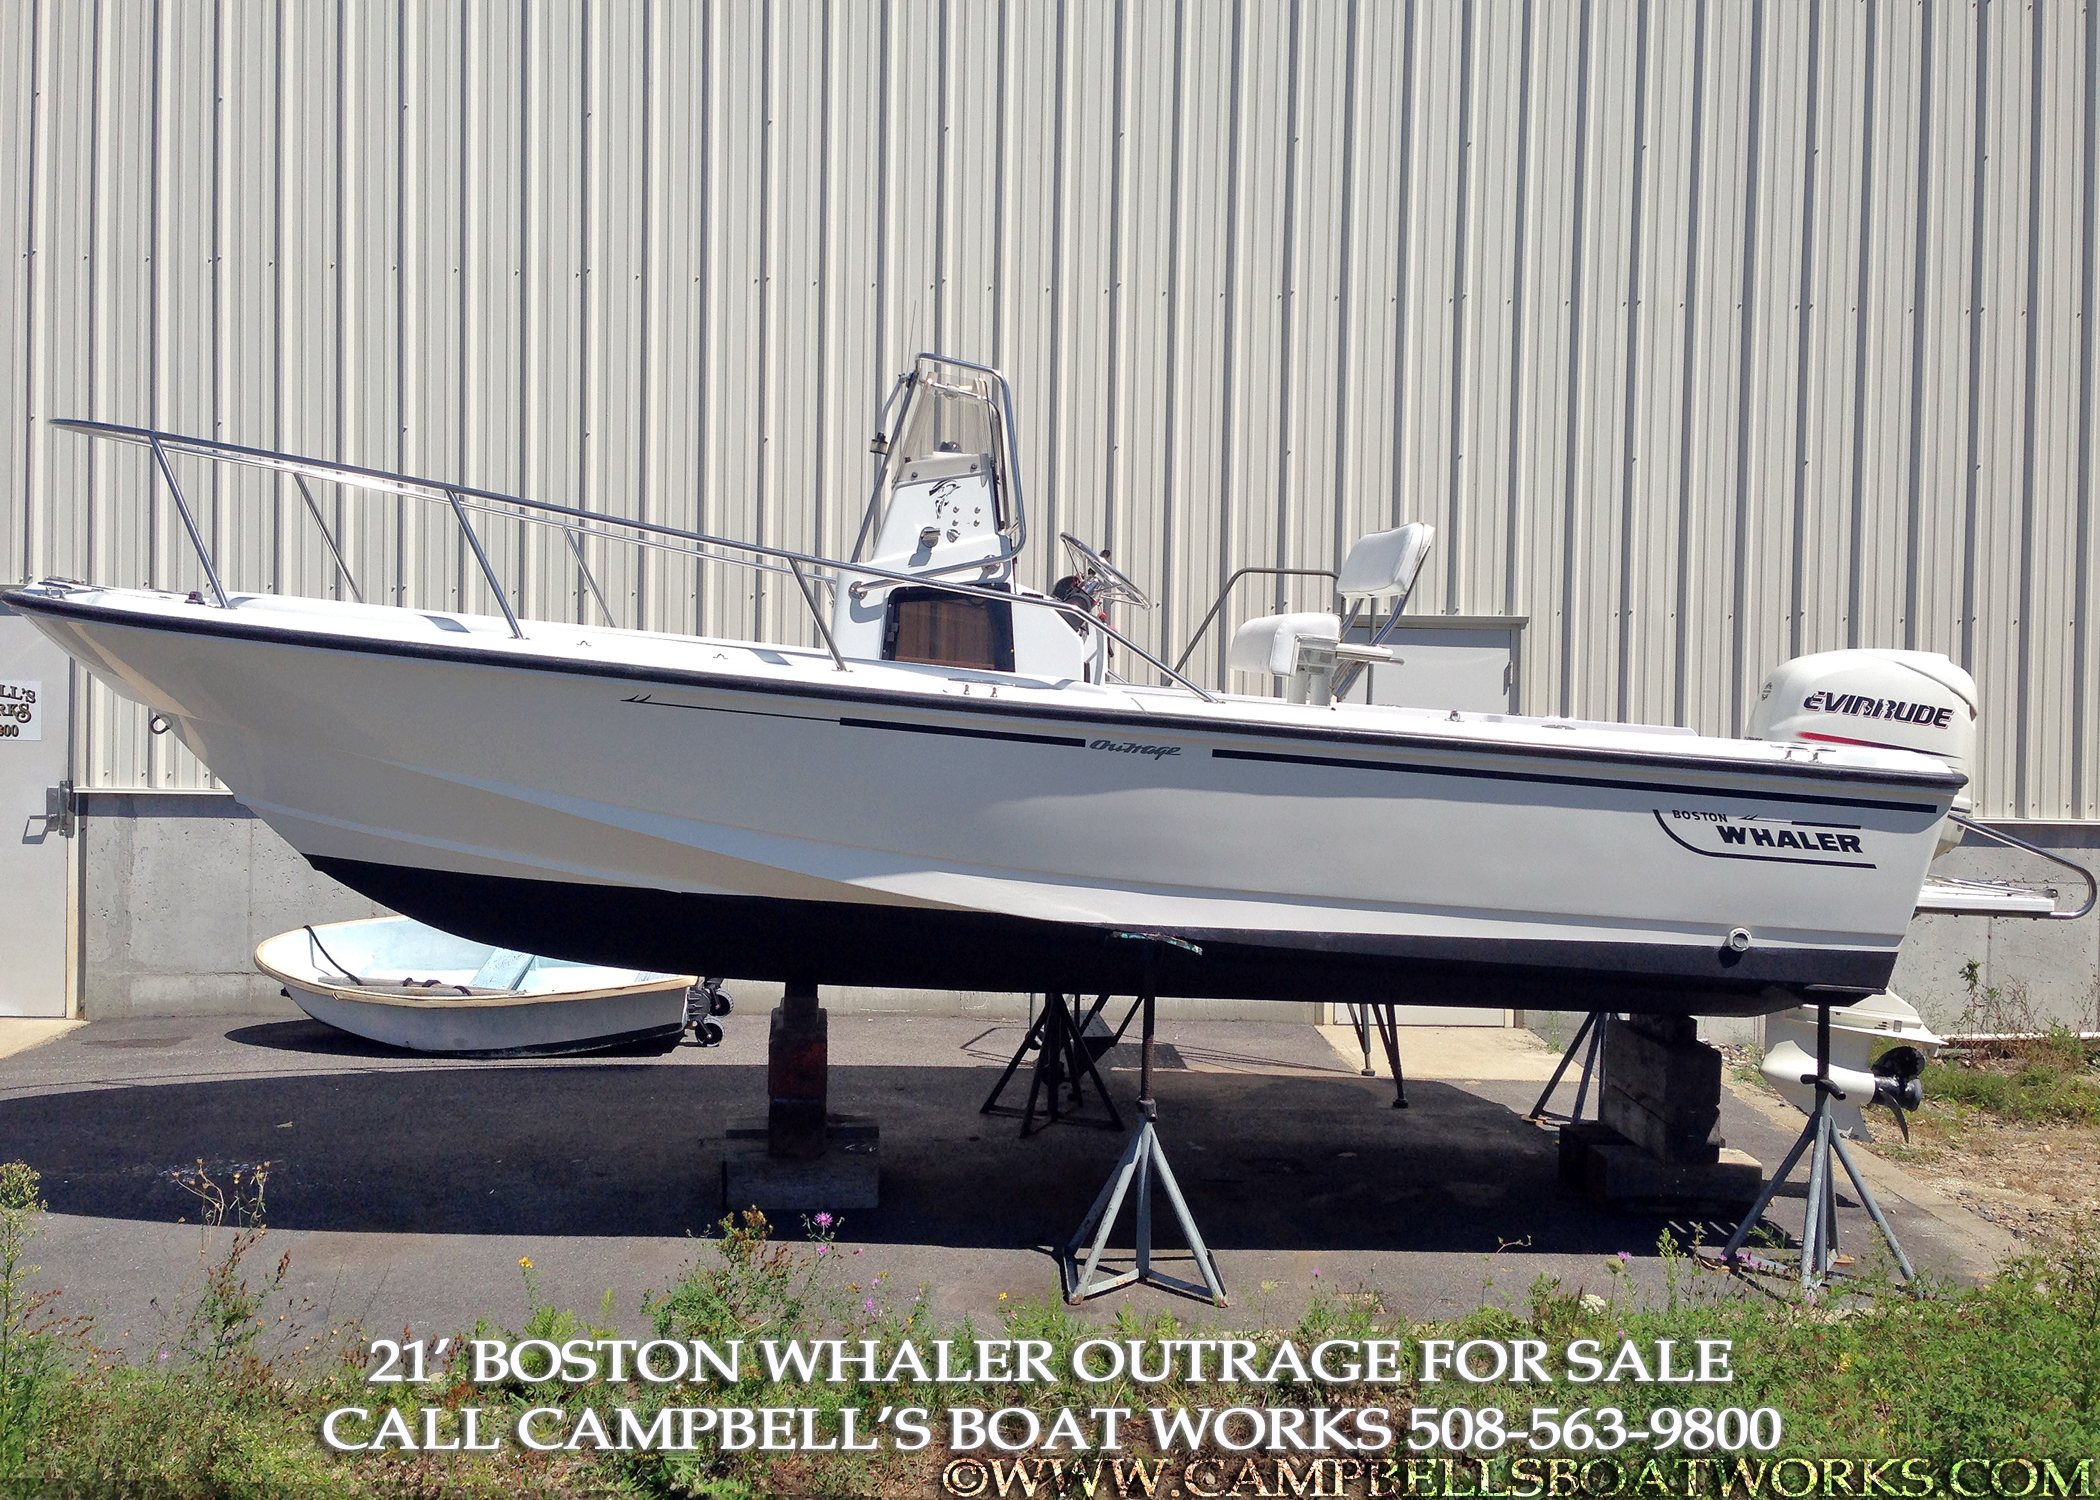 21 Boston Whaler Outrage — Campbell's Boat Works Inc